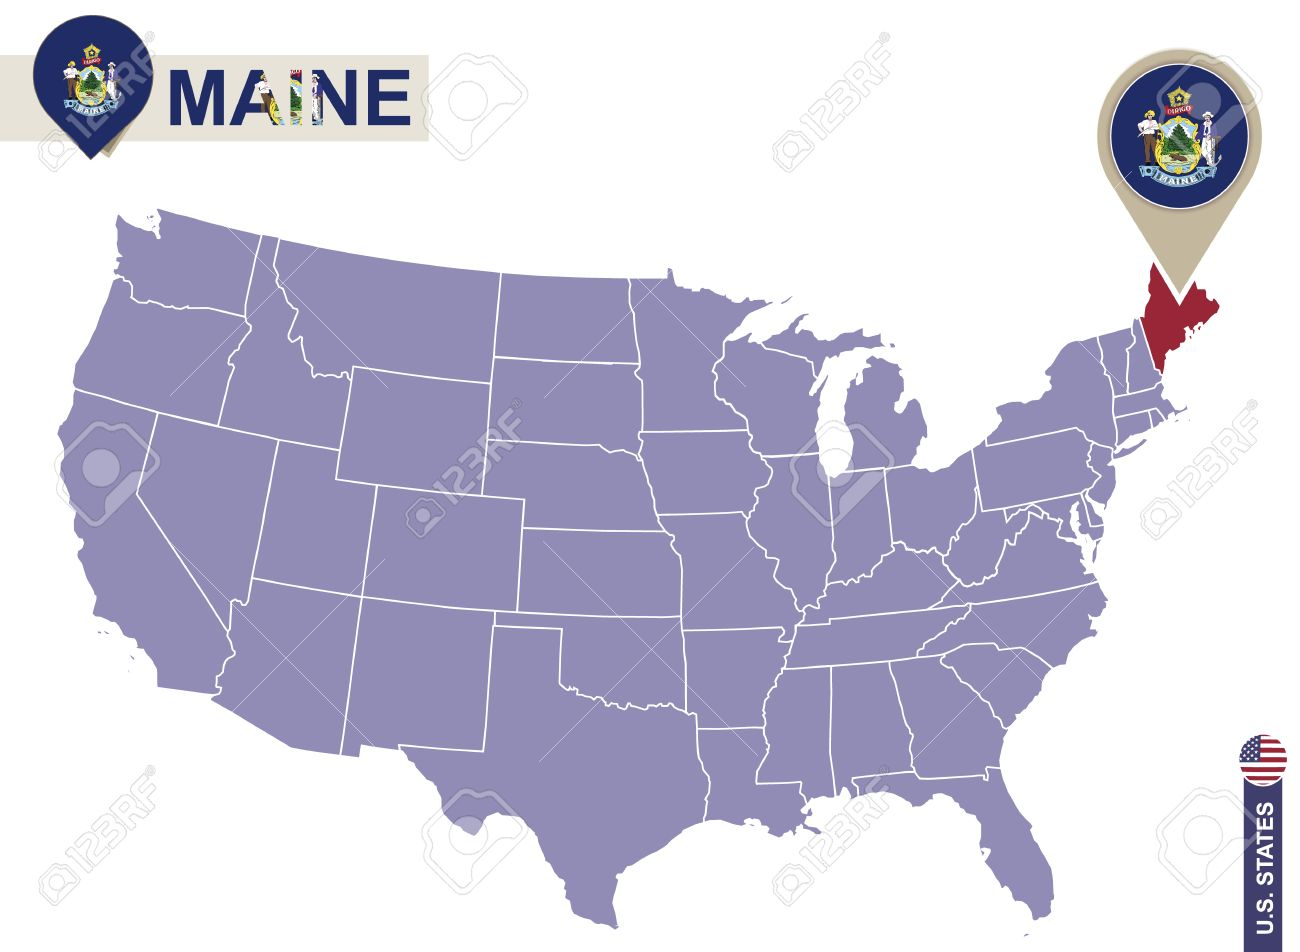 Maine State on USA Map. Maine flag and map. US States. on map arkansas usa, map of maine coast, north carolina, map baltimore usa, map cuba usa, rhode island, new england, map houston usa, map maine cities, new york, map san antonio usa, map russia usa, map new hampshire usa, map minneapolis usa, map of maine towns, visit maine usa, map state usa, new hampshire, map ireland usa, map nashville usa, map north dakota usa, map panama usa, map virgin islands usa, map charlotte usa, map of maine rivers, new jersey,